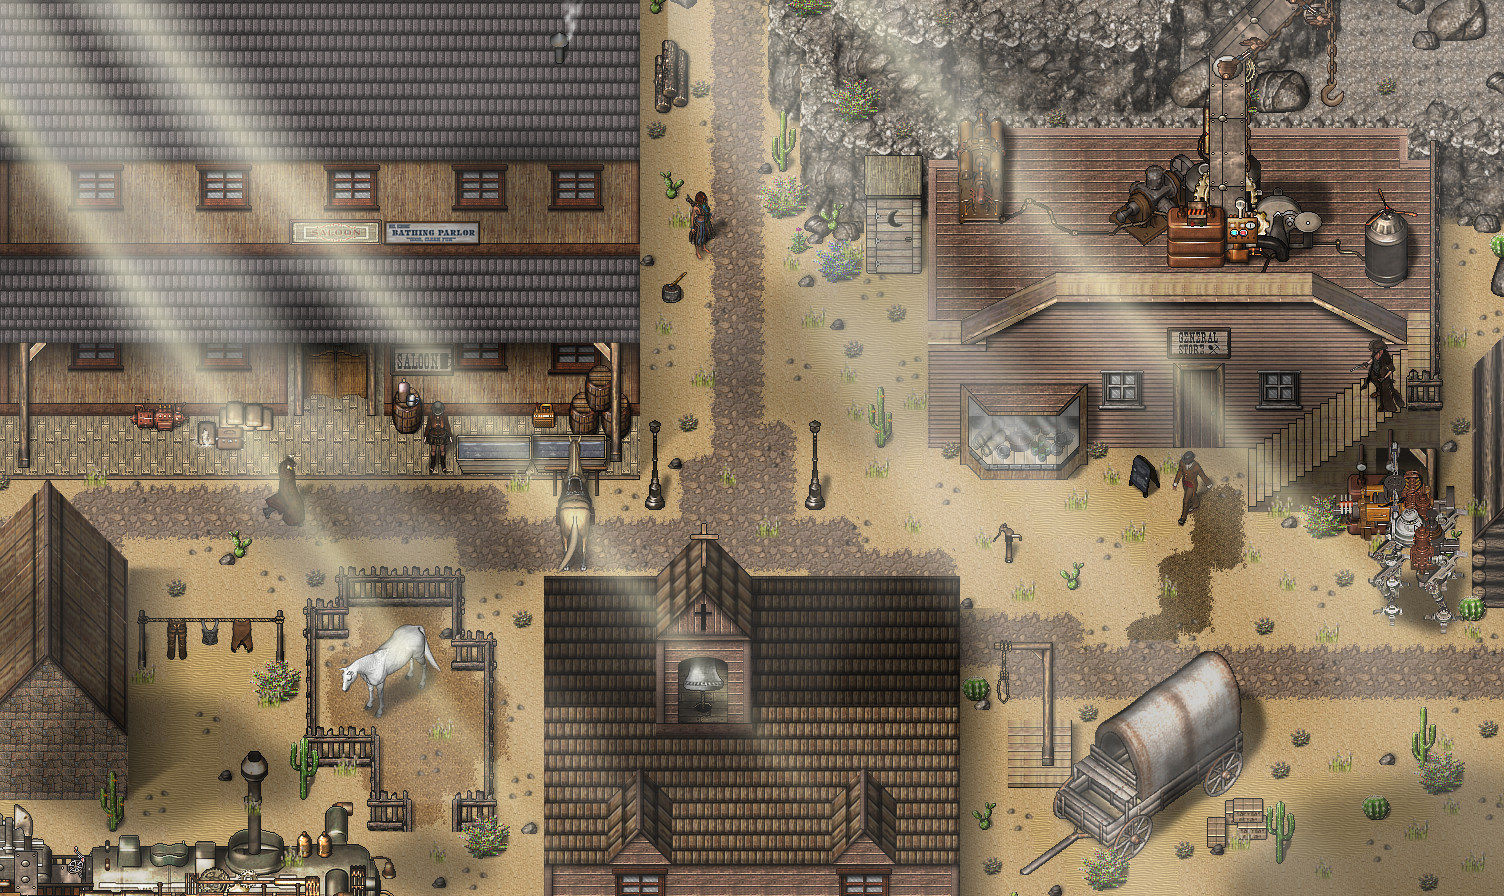 RPG Maker VX Ace - Wild Steam Resource Pack Steam Discovery